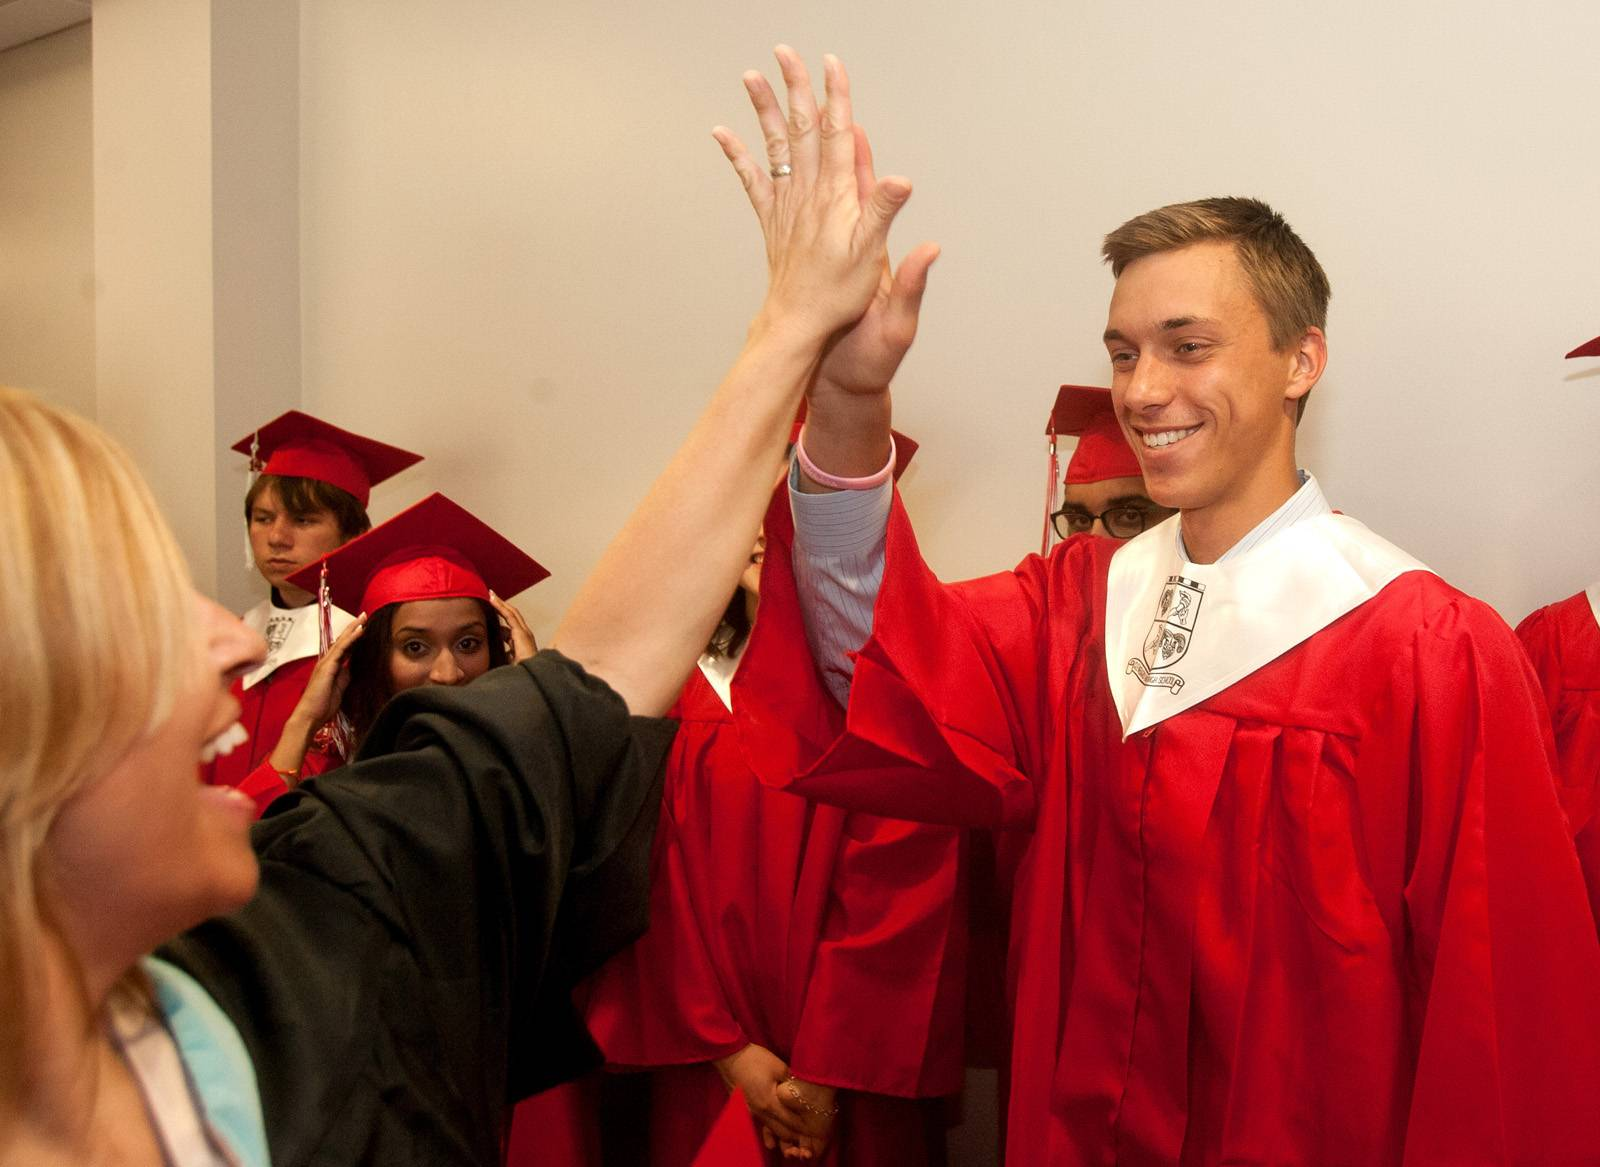 Glenbard East High School held its graduation Saturday, June 7 at the College of DuPage in Glen Ellyn.